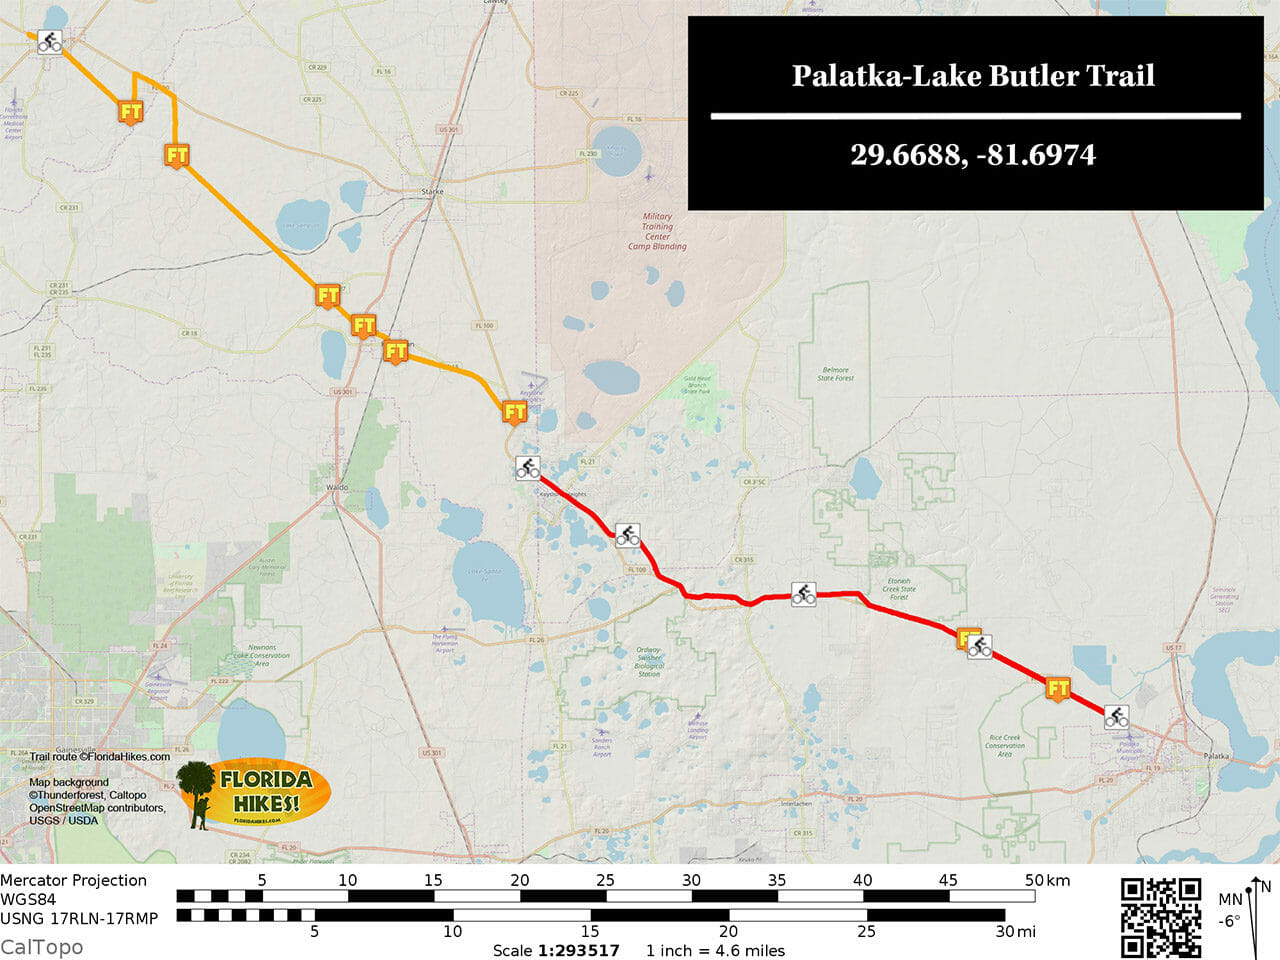 Palatka-Lake Butler Trail map